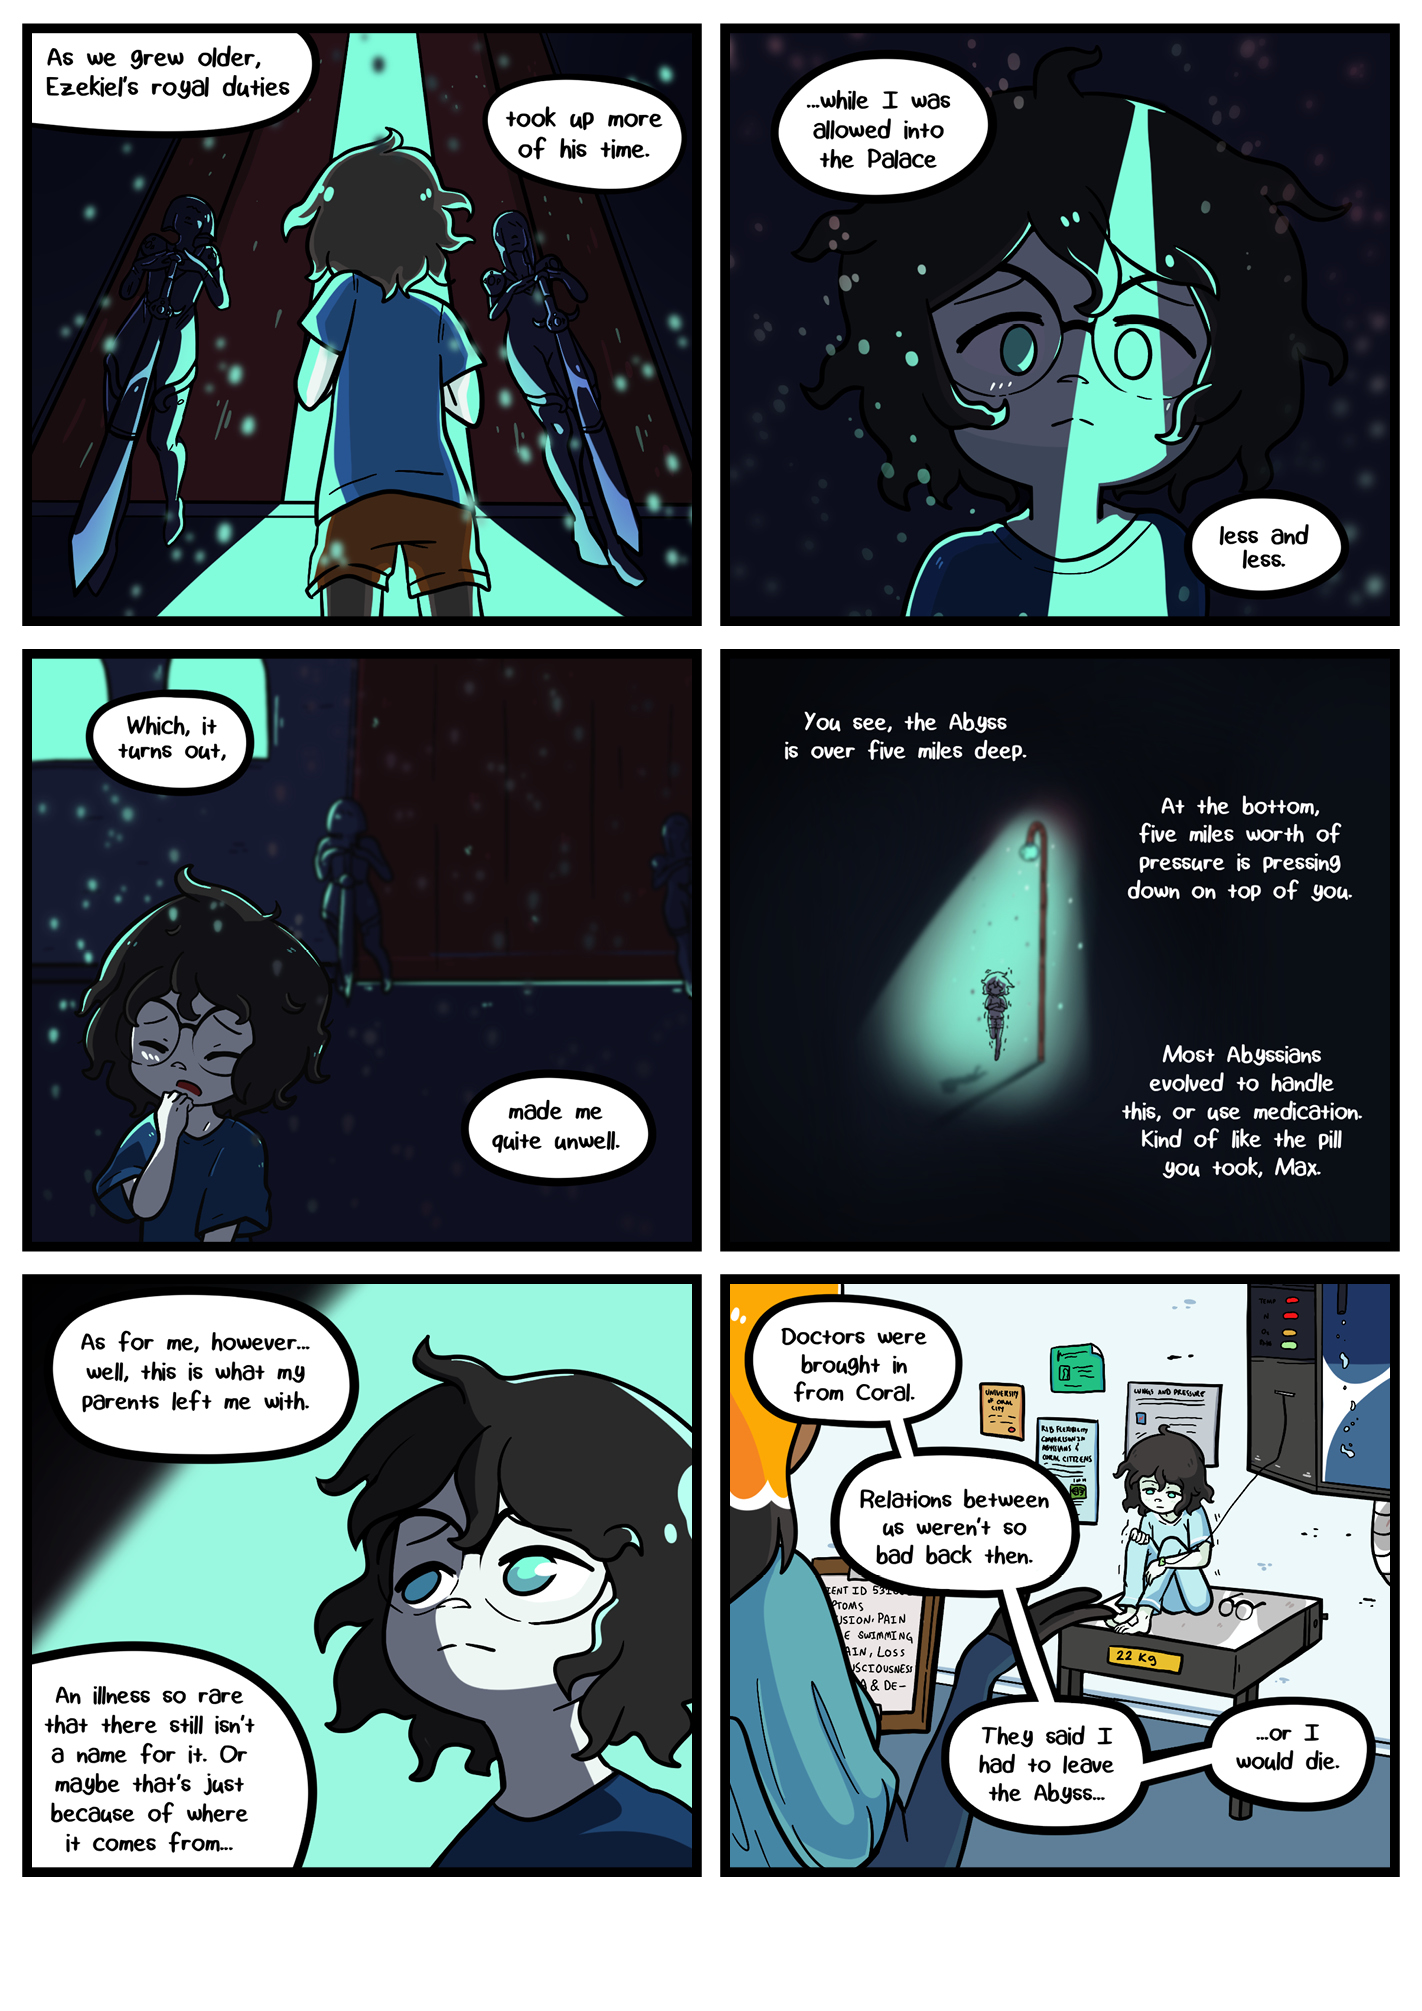 Seasick the underwater adventure comic, chapter 2 page 62 full